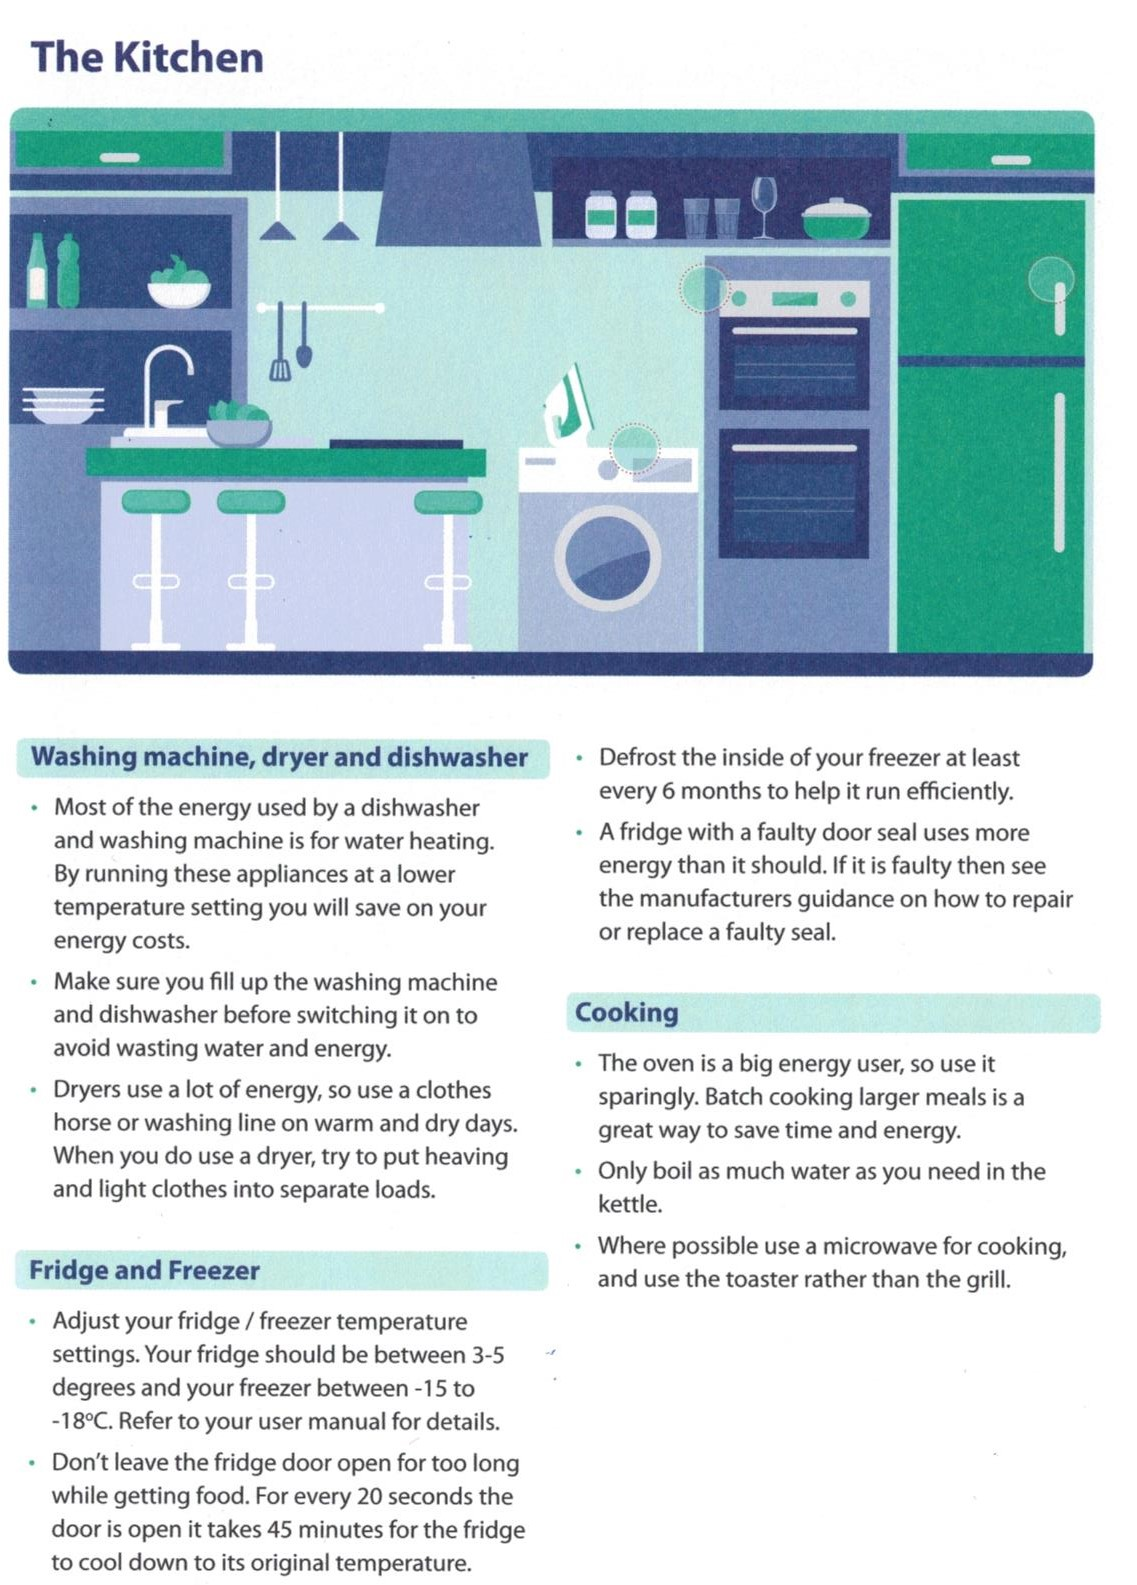 tips to save energy in the kitchen